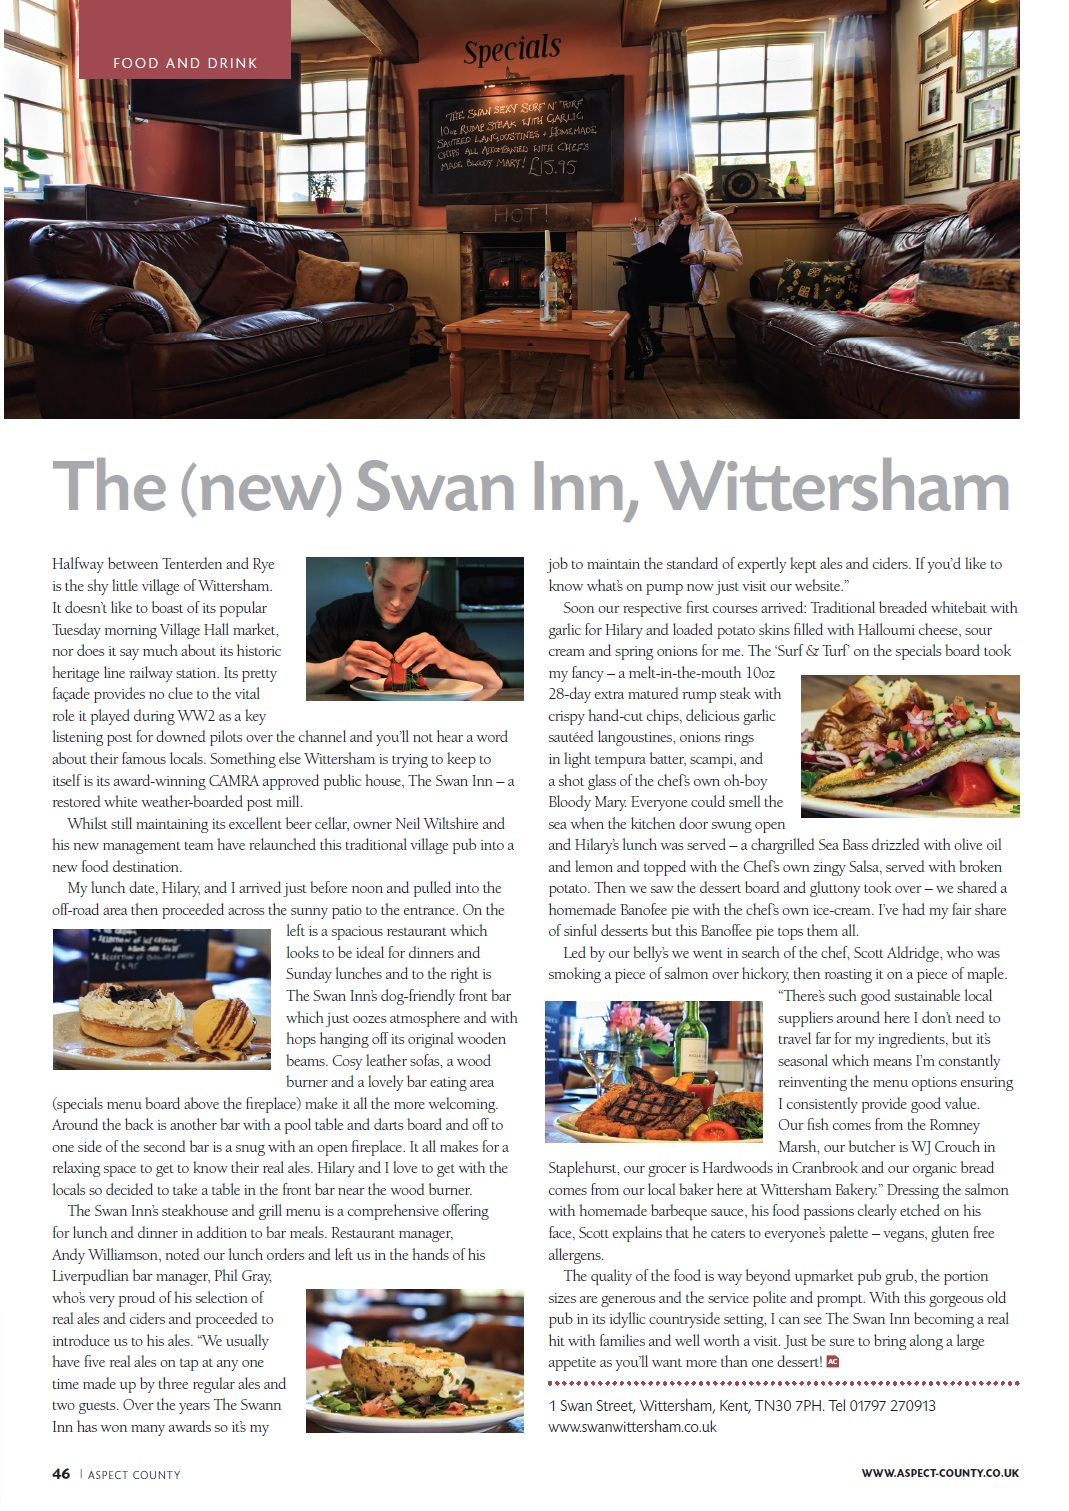 Aspect County, UK - Swan Inn Wittersham